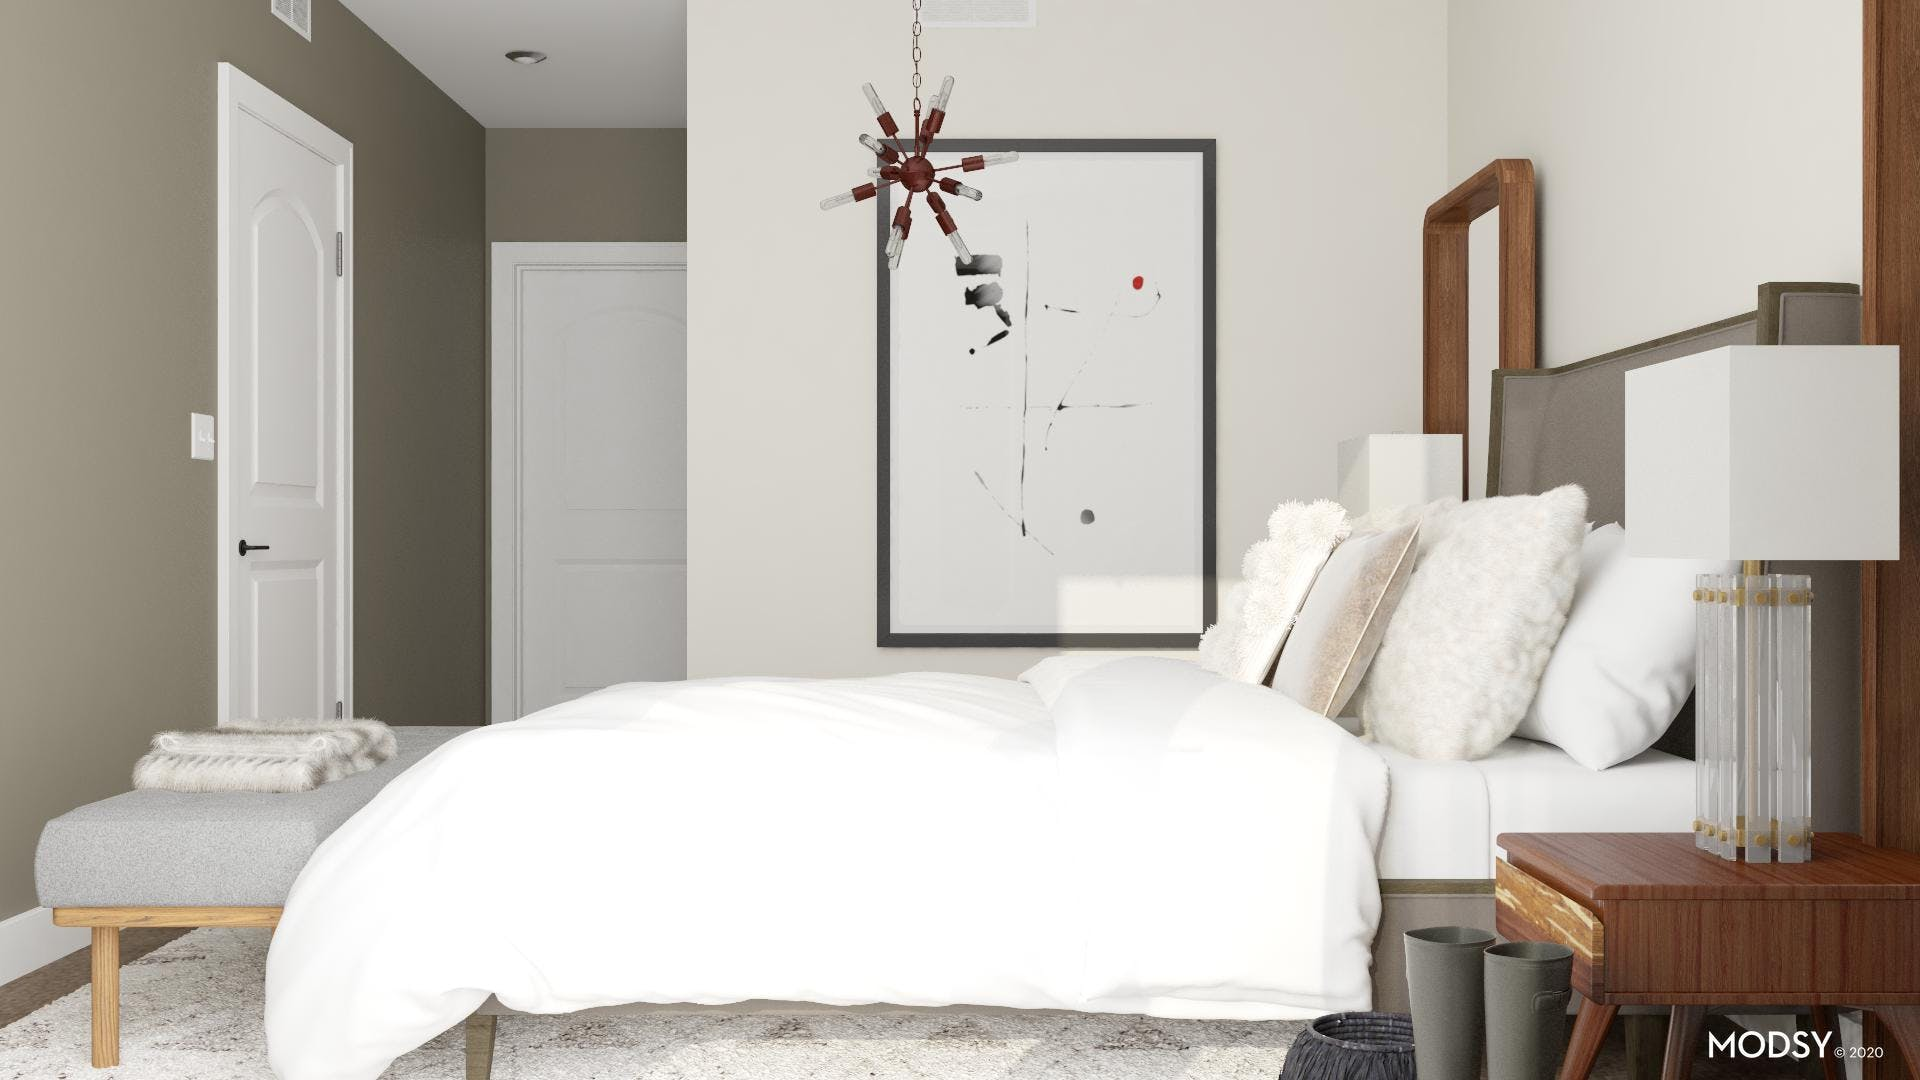 A Pendant Nice Touch Of Modern In The Bedroom